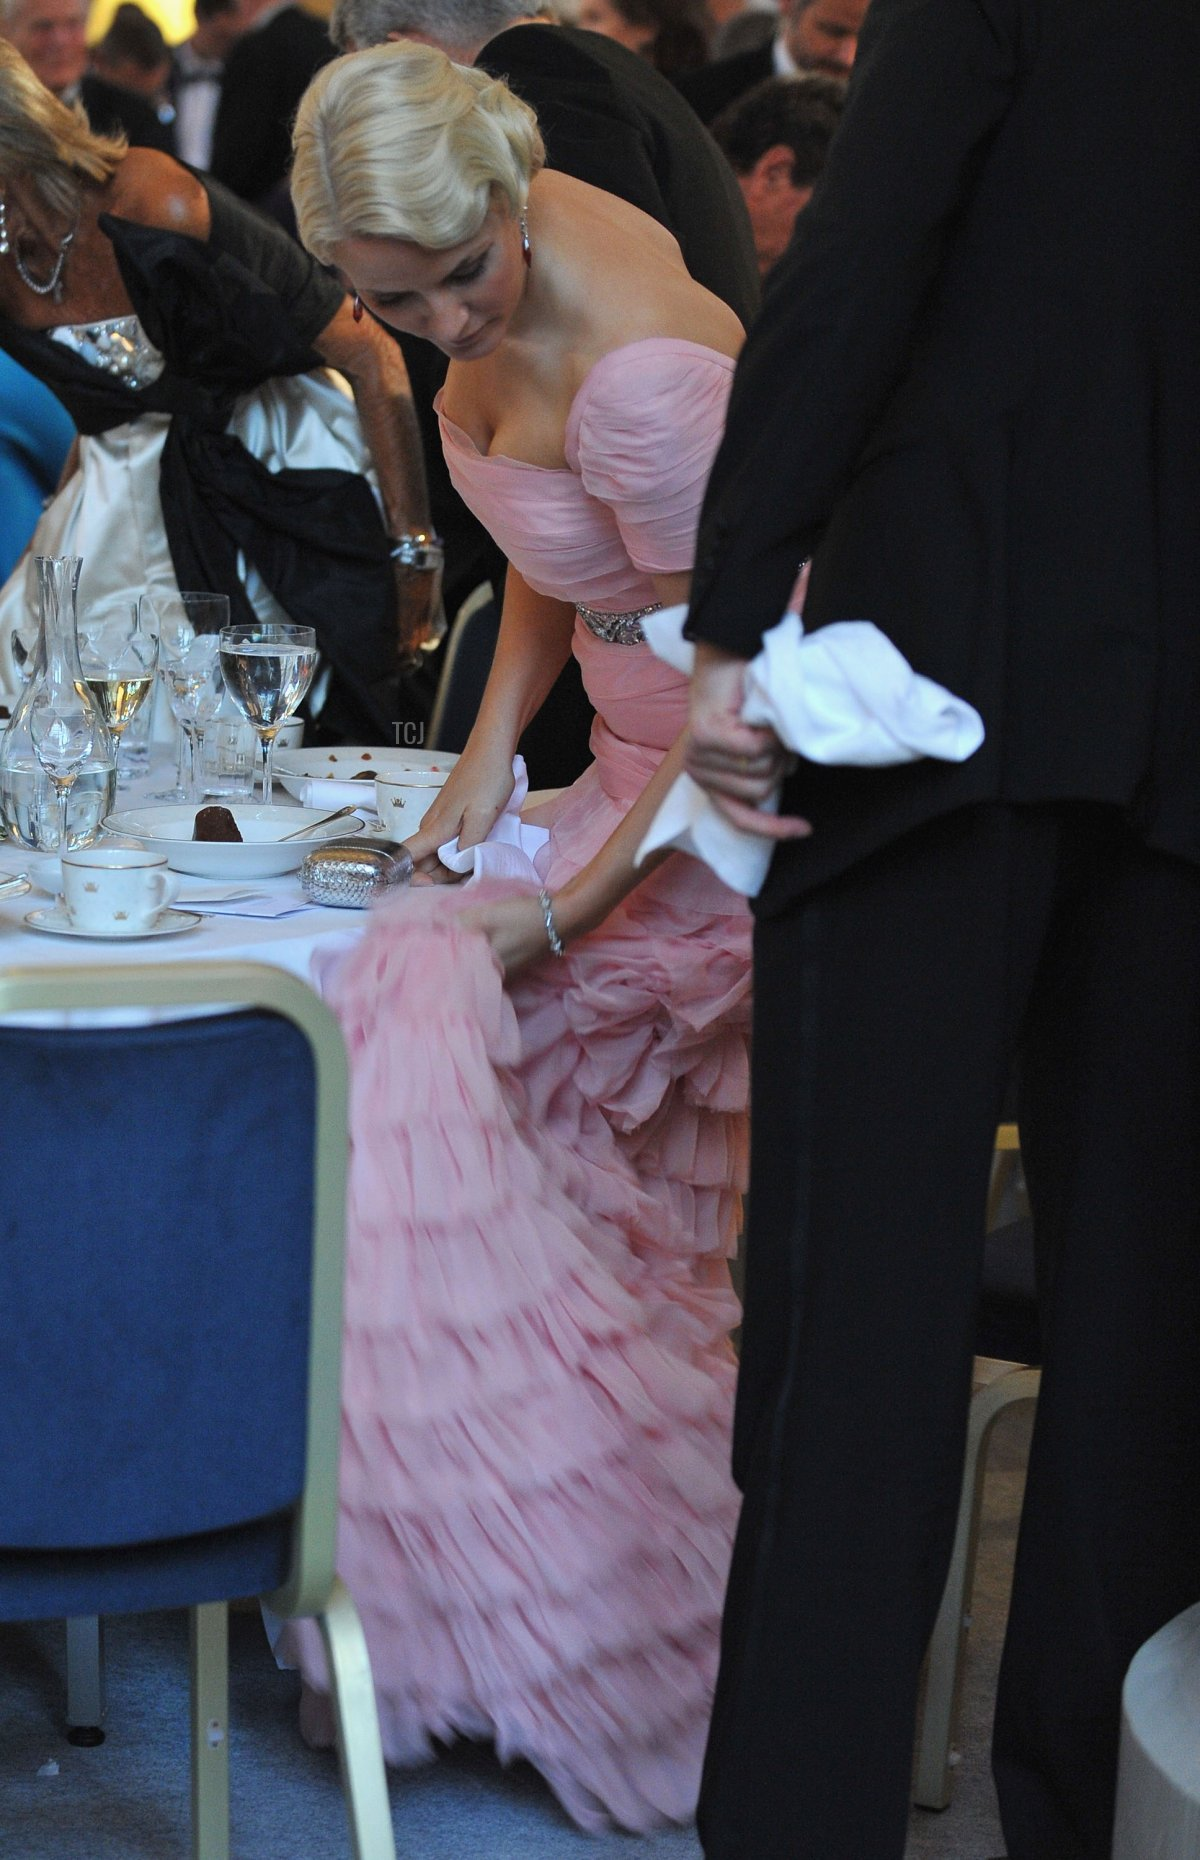 Crown Princess Mette-Marit Of Norway attends the Government Pre-Wedding Dinner for Crown Princess Victoria of Sweden and Daniel Westling at The Eric Ericson Hall on June 18, 2010 in Stockholm, Sweden